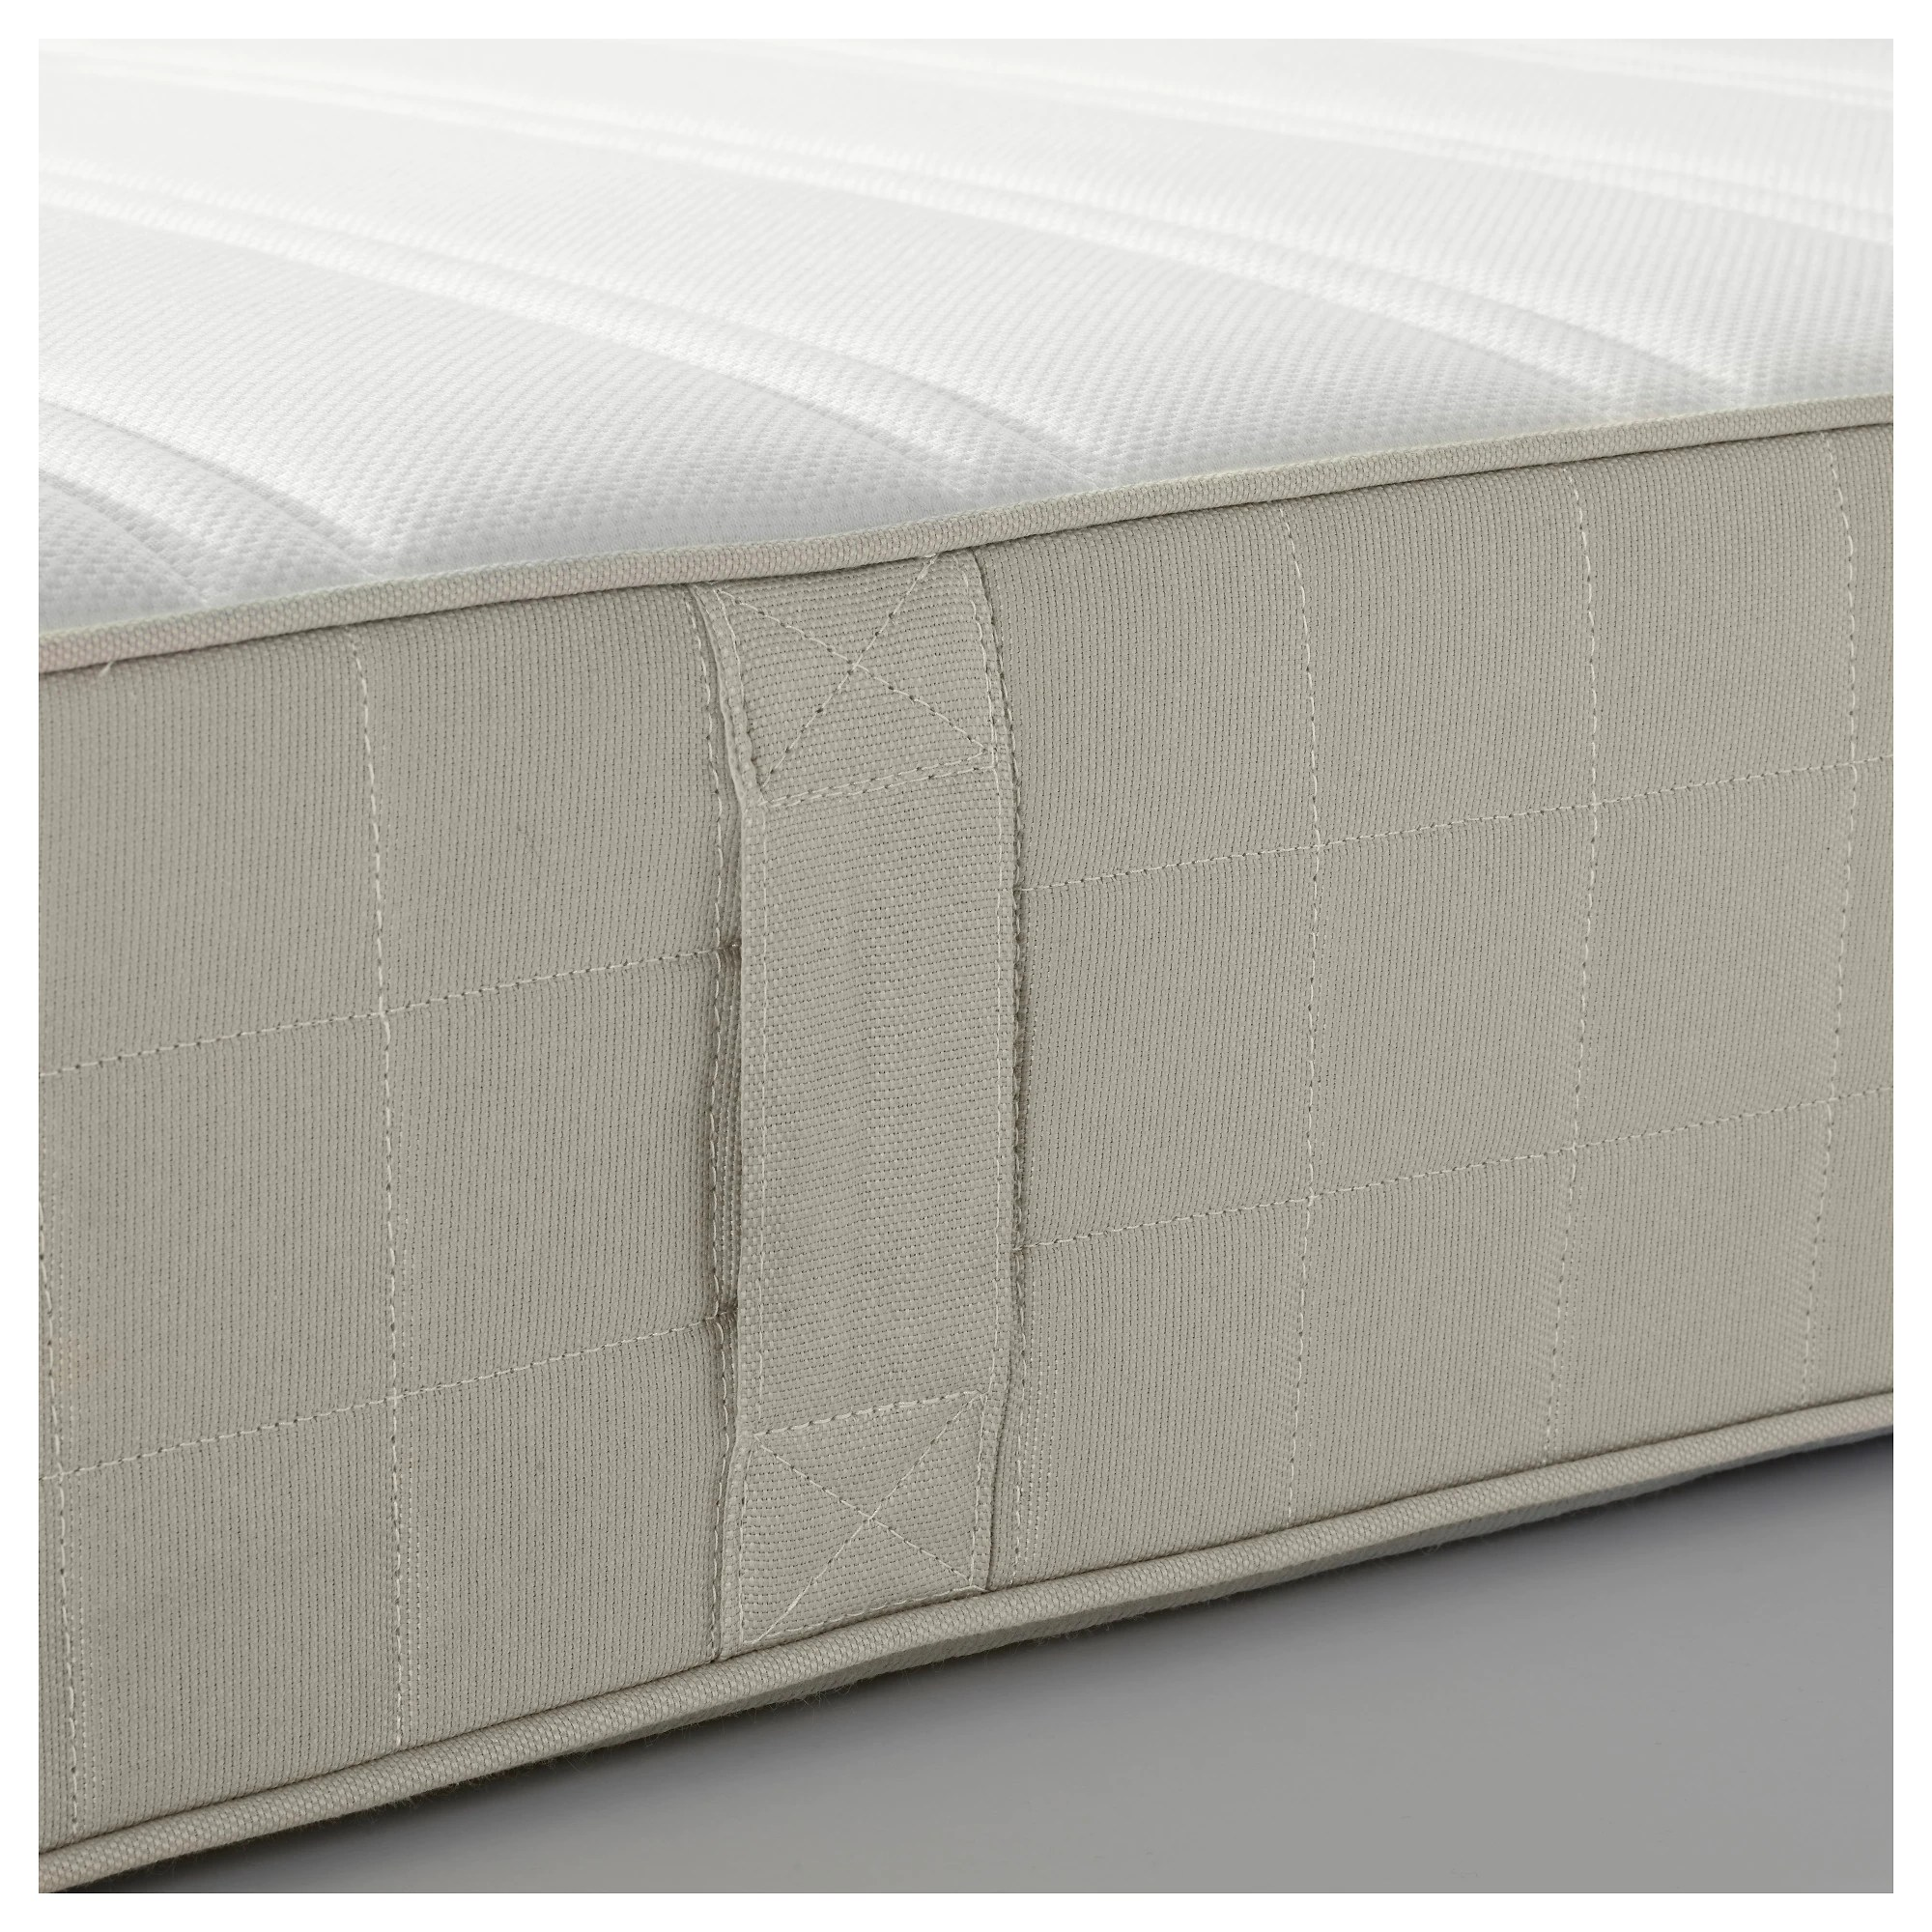 Hovag Mattress HasvÅg Spring Mattress Medium Firm Beige